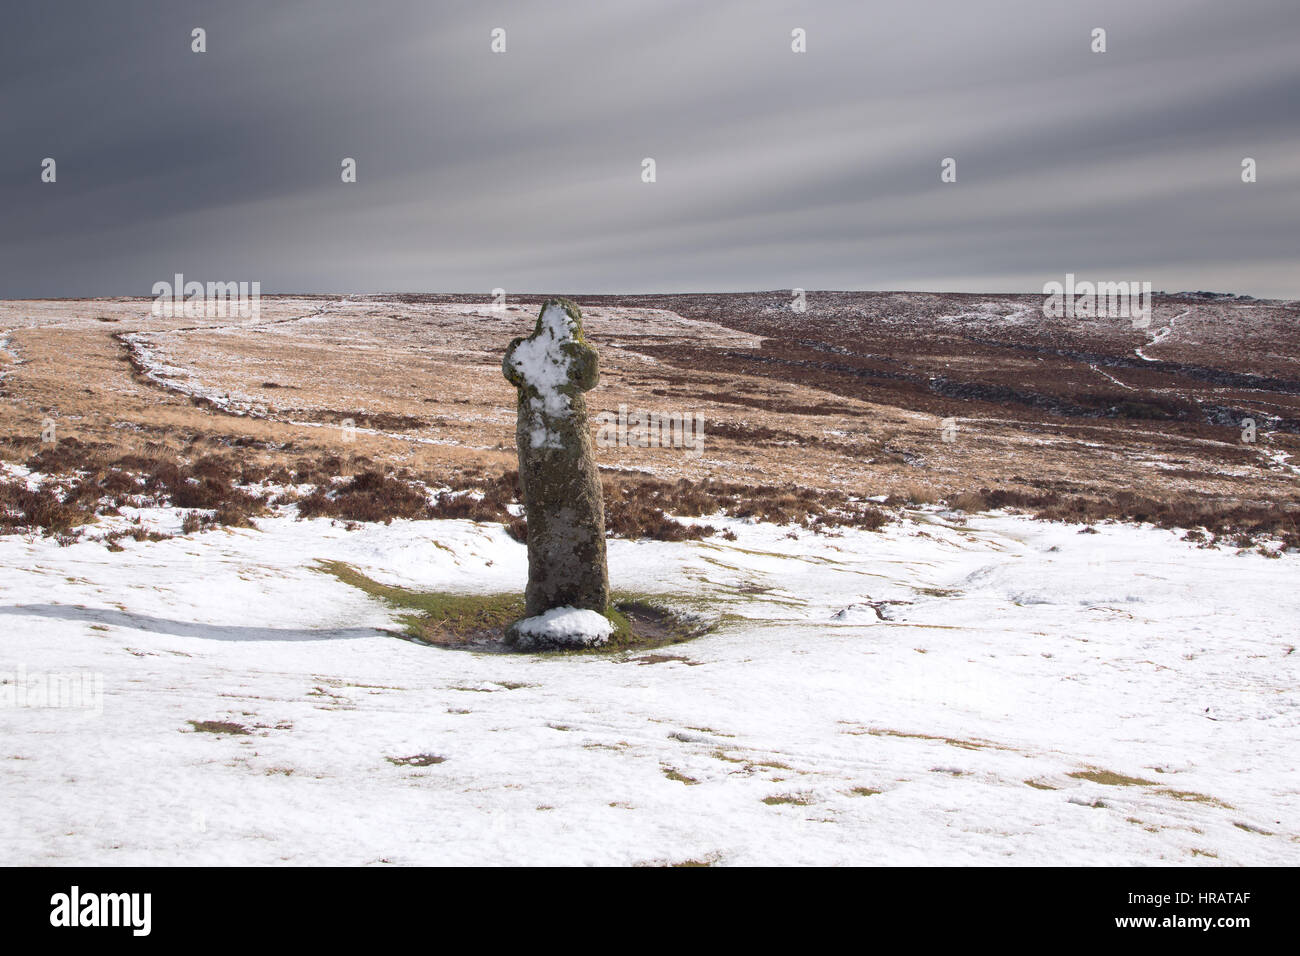 Dartmoor, Devon, UK. 28th Feb, 2017. UK Weather. A light dusting of snow fell on Dartmoor, Devon Credit: Anna Curnow/Alamy Stock Photo